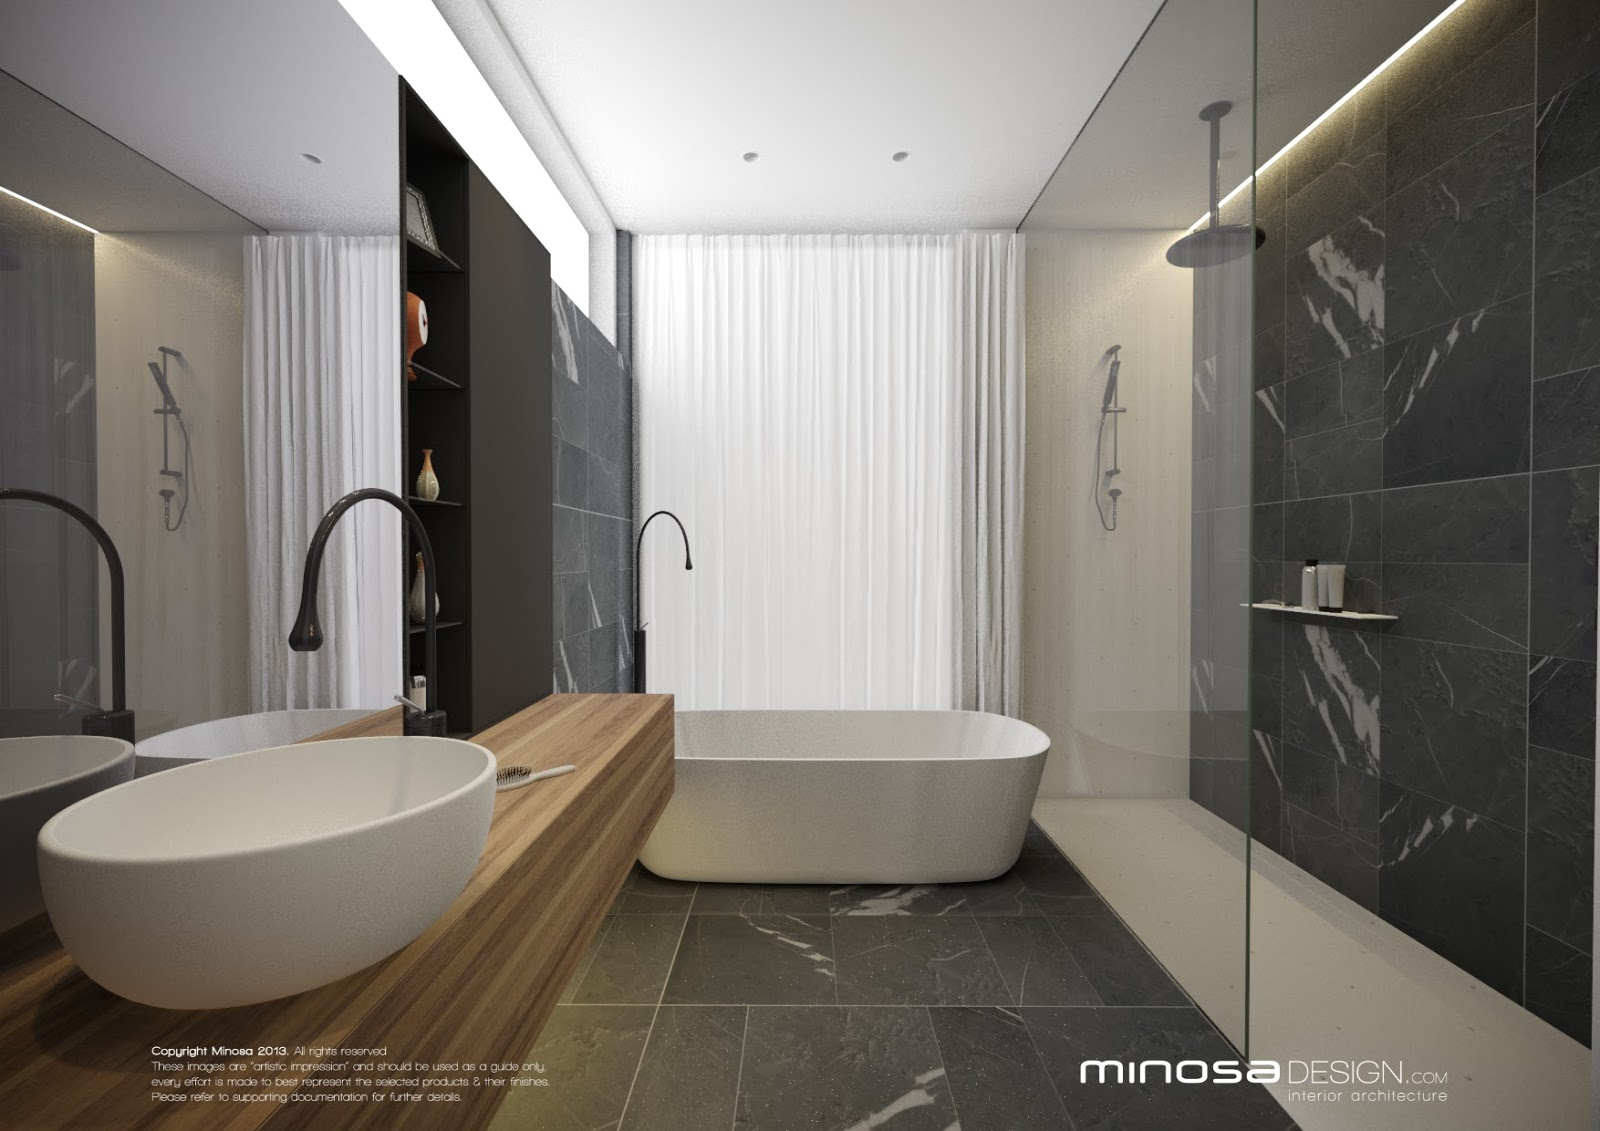 Minosa modern bathroom design to share for The bathroom designer